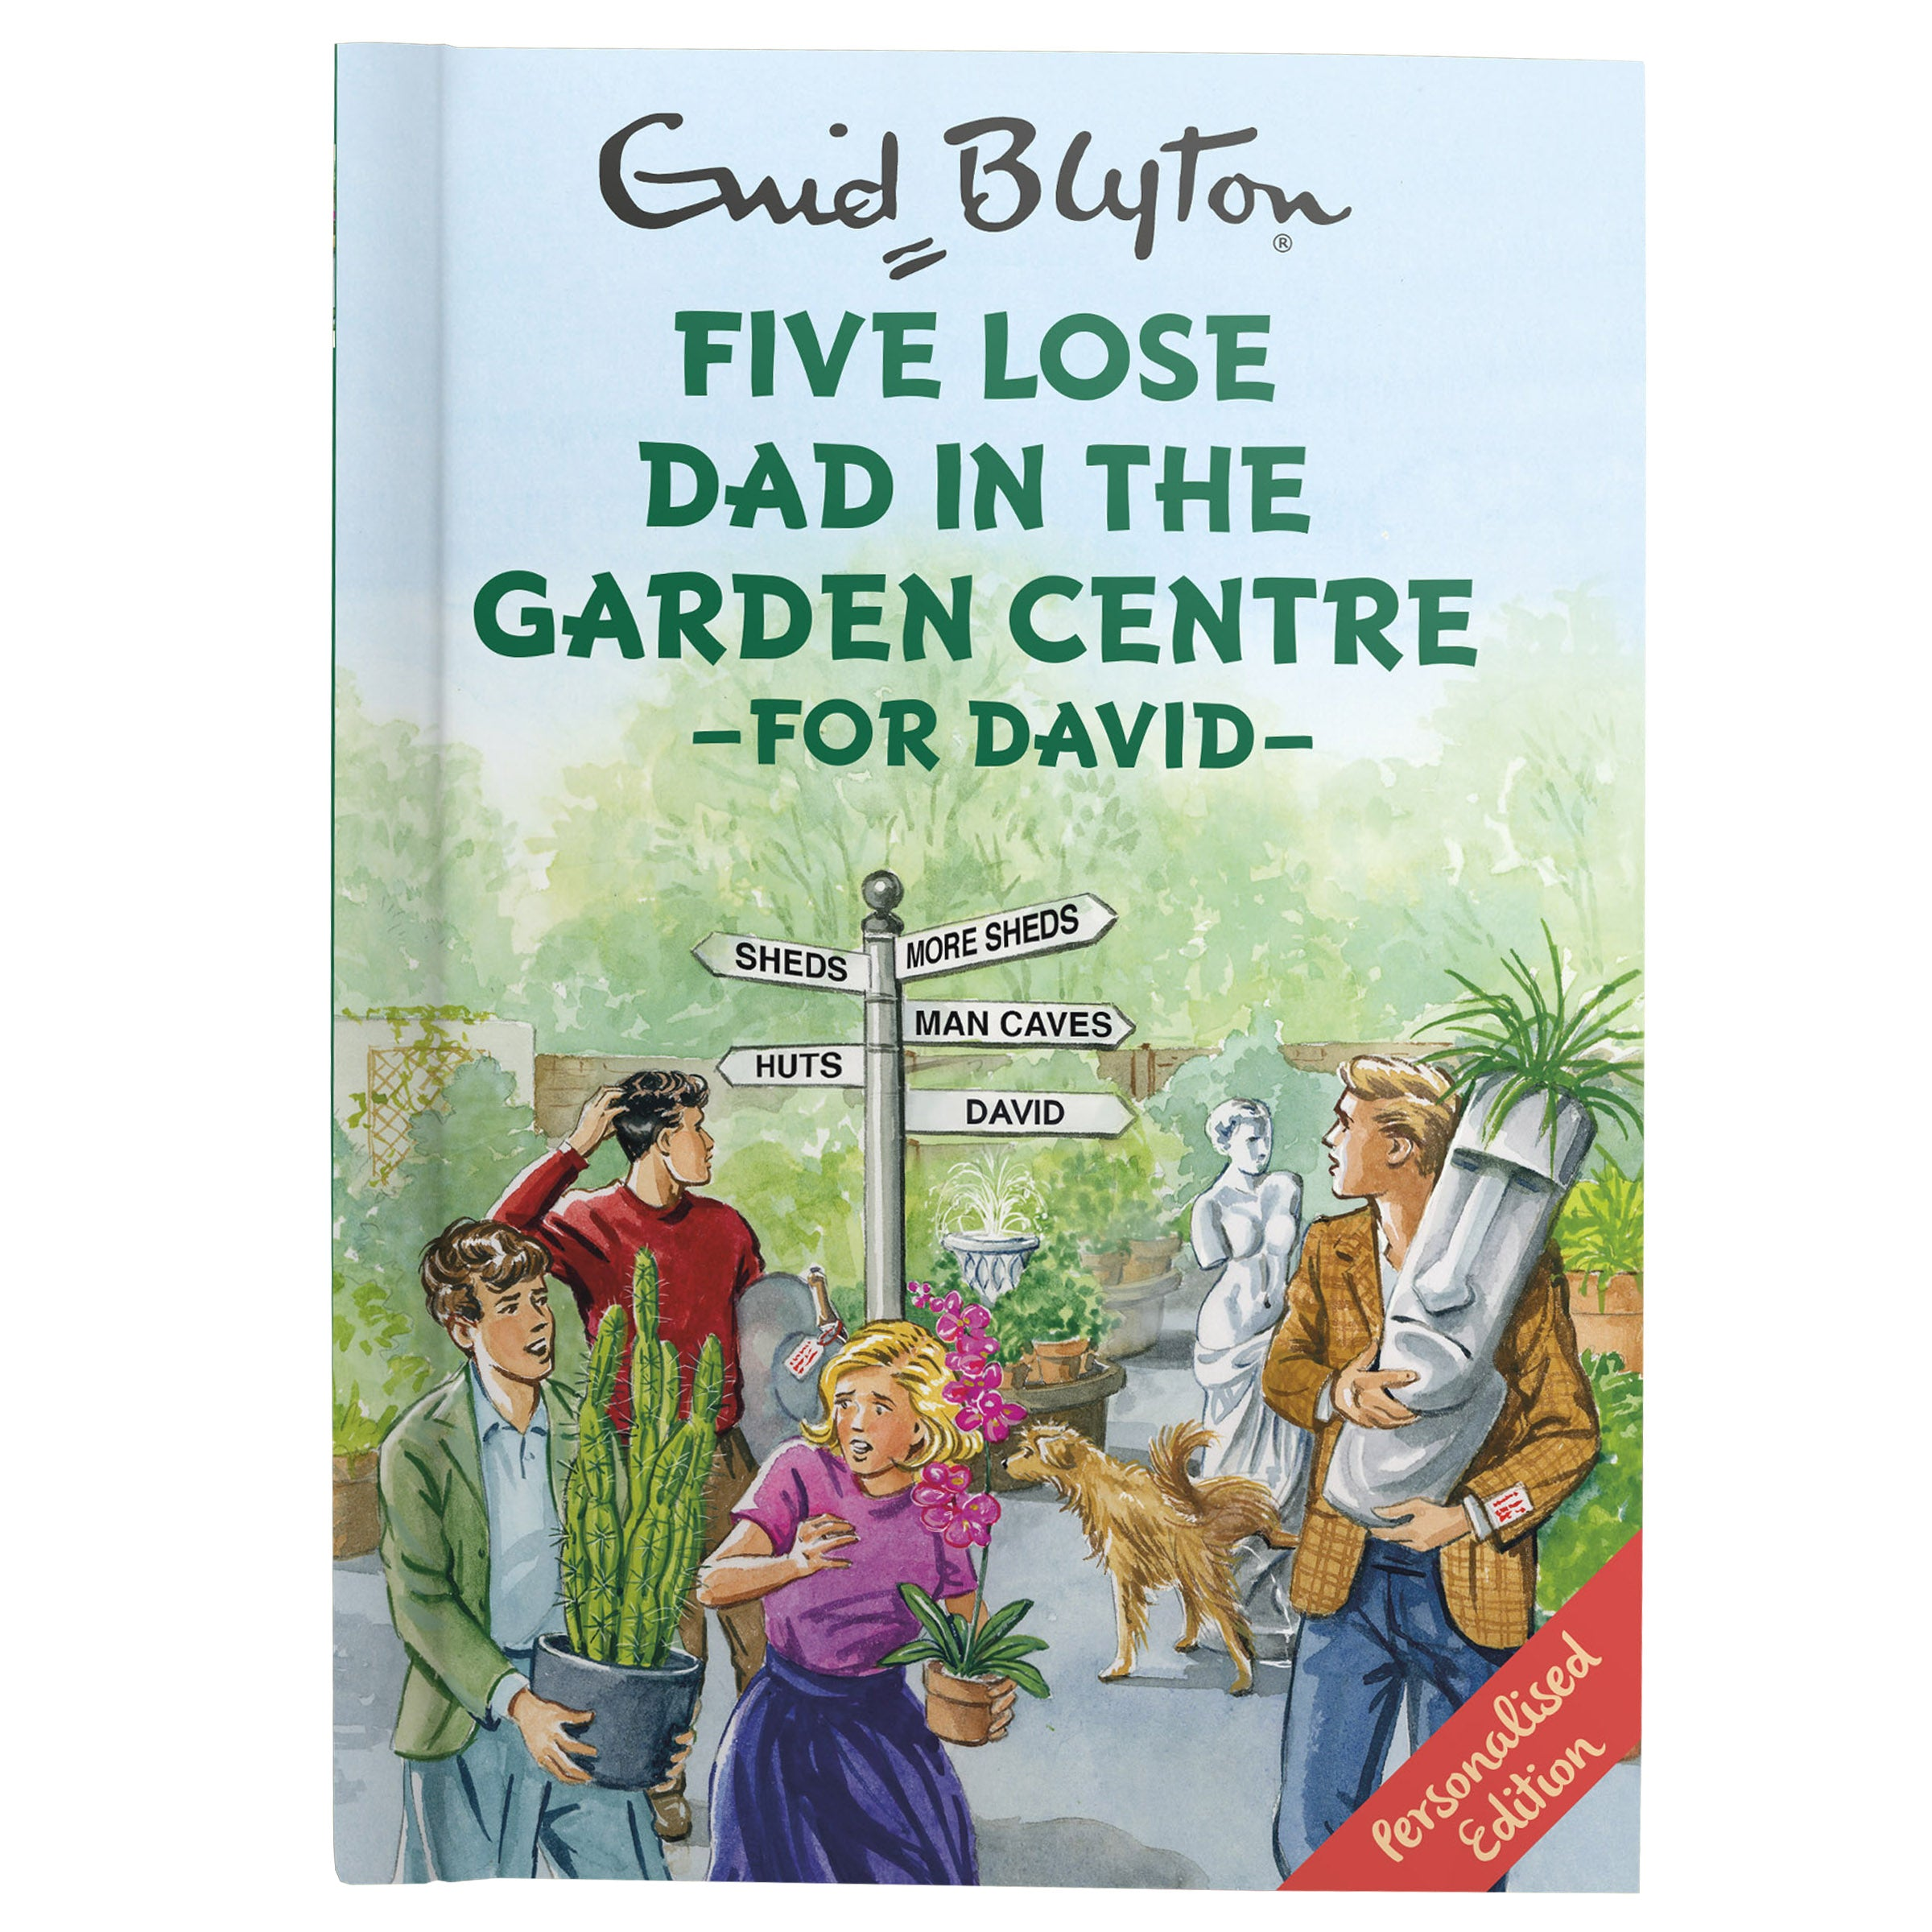 Personalised Book Enid Blyton Five Lose Dad In The Garden Centre Spoof Gift